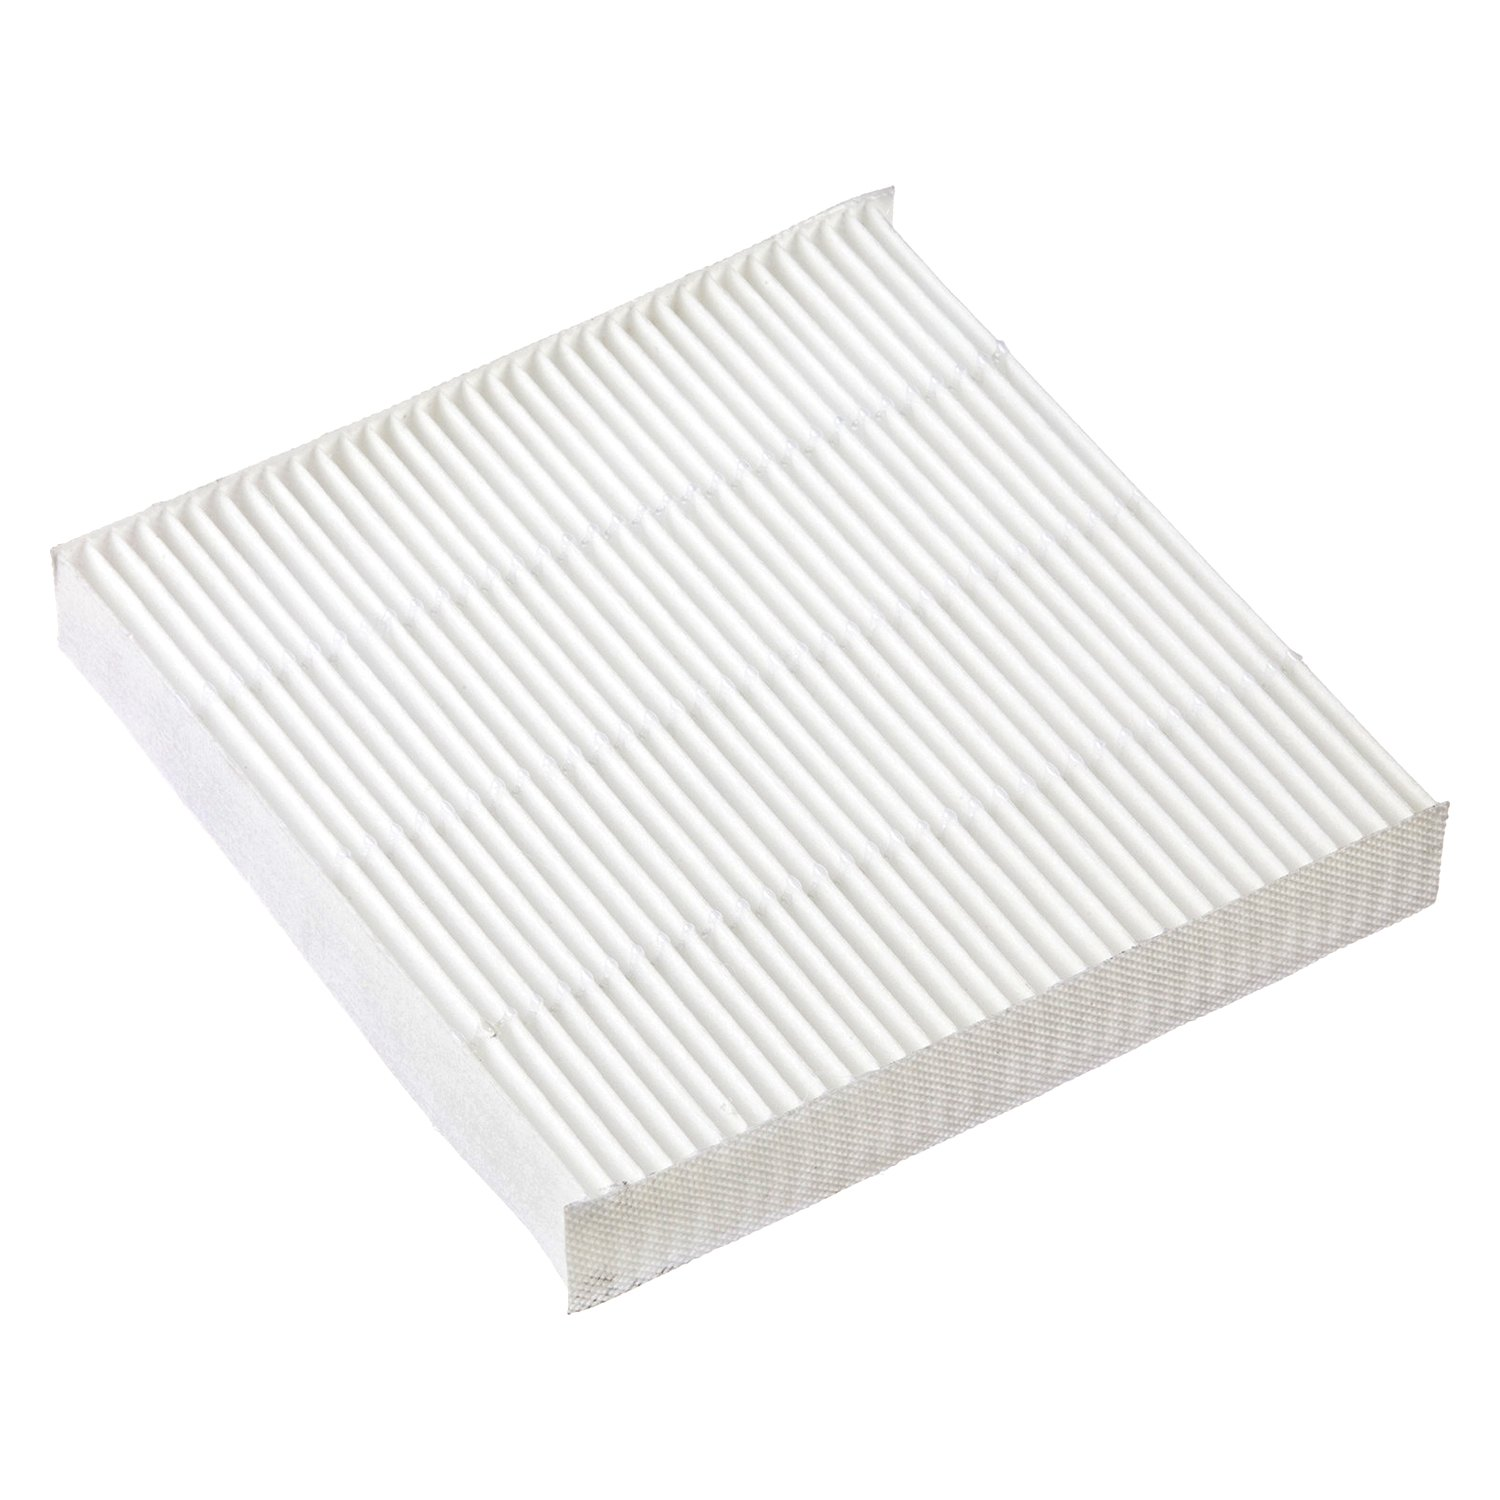 Cabin Air Filter 24201 Wix